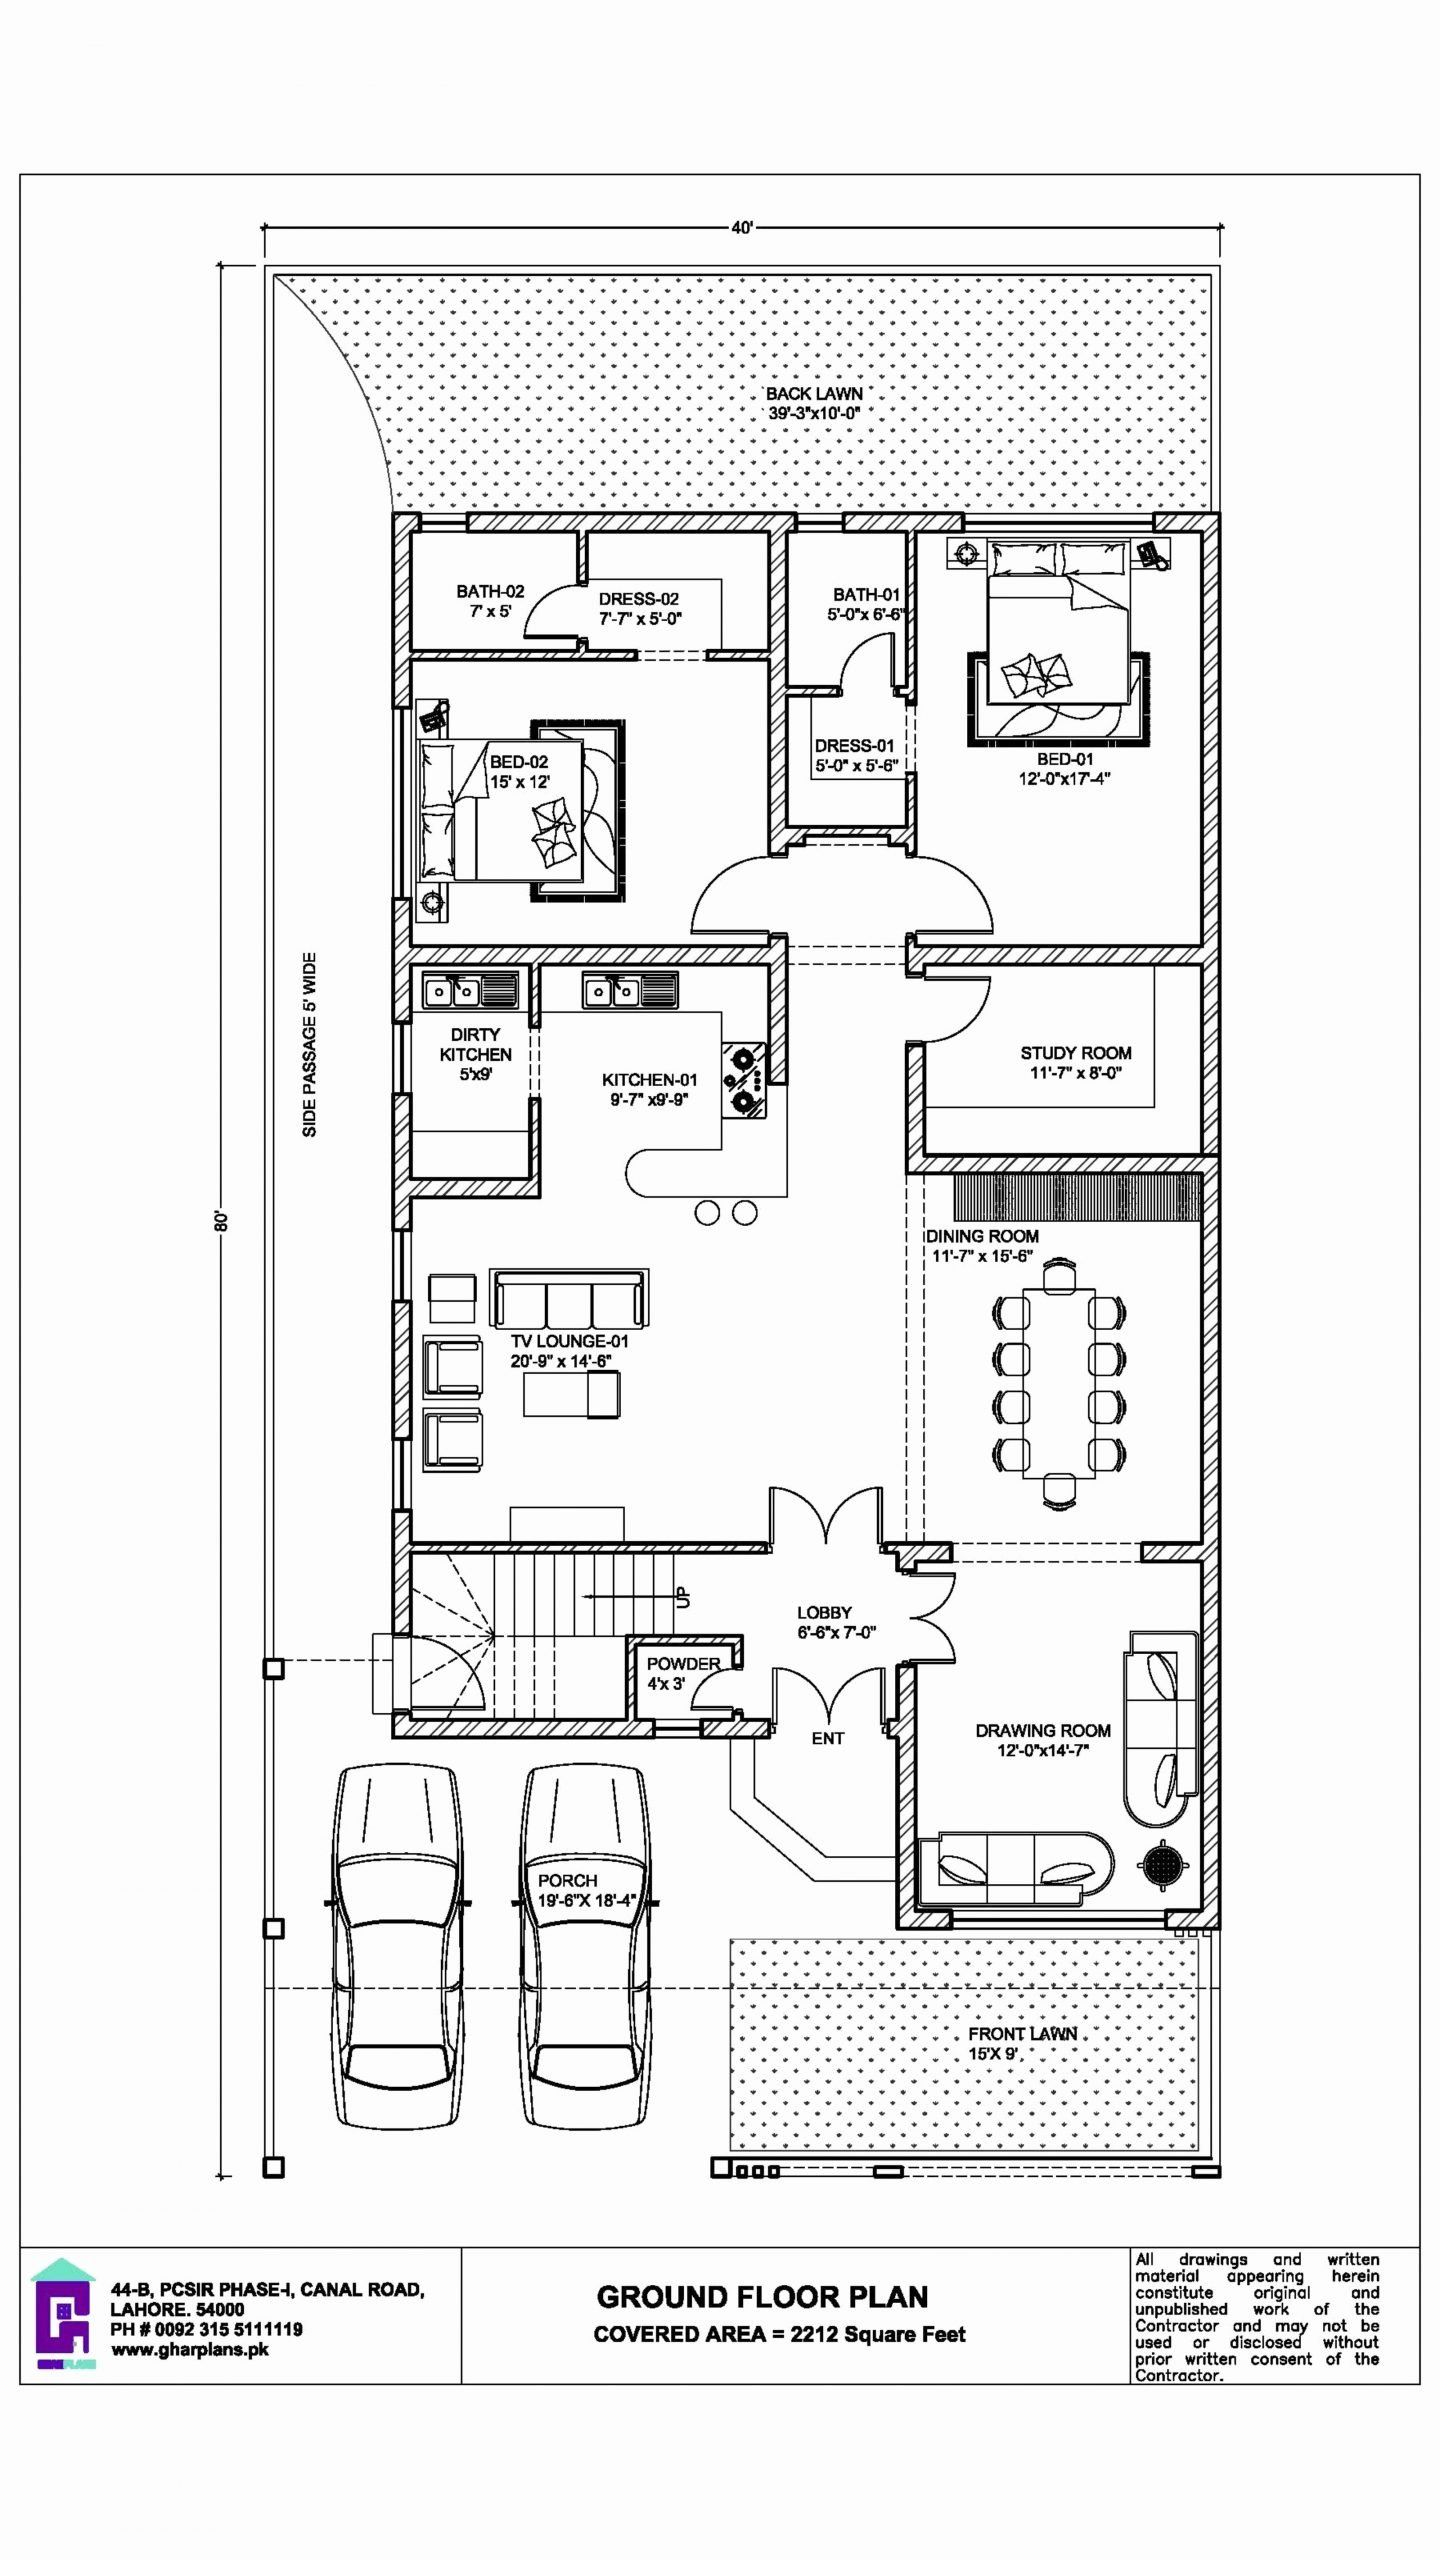 350 Sq Ft House Plans Best Of 350 Square Yard House Design 40 Ft X 80 Ft Square House Plans 10 Marla House Plan House Layout Plans